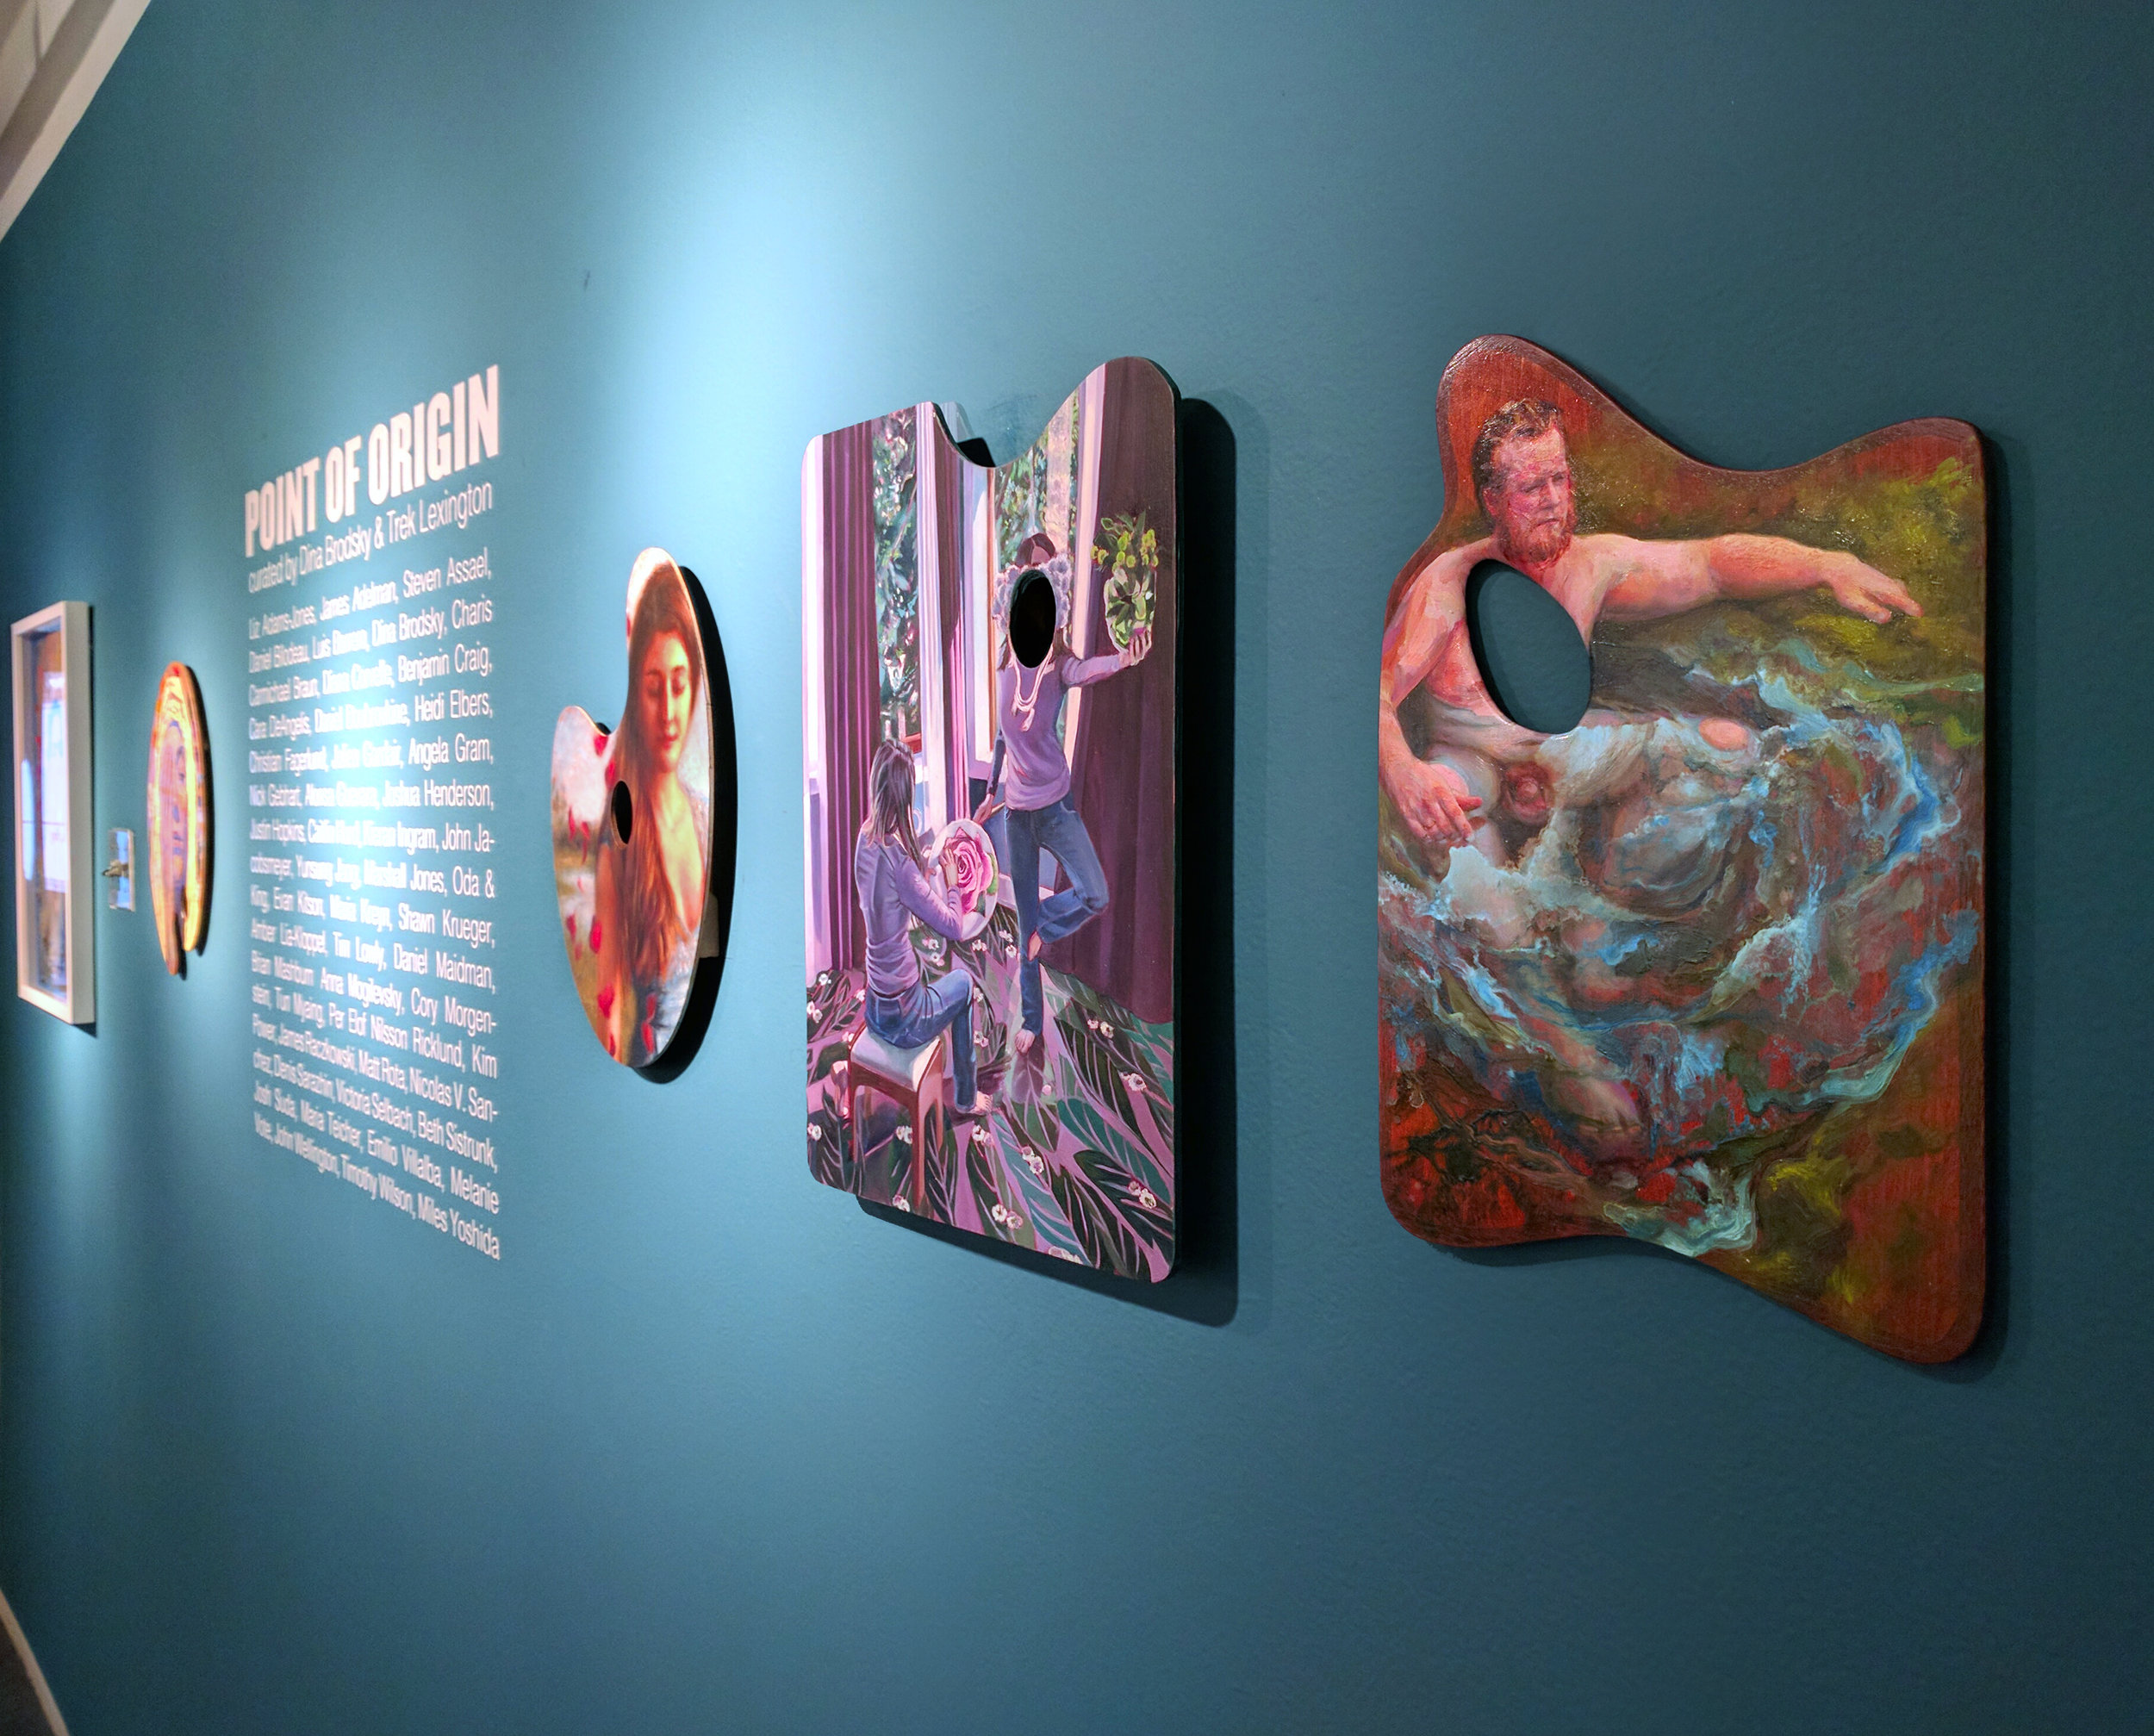 Installation view at The Lodge Gallery, seen with (from left) Beth Sistrunk, and Anna Mogilevsky's palettes.